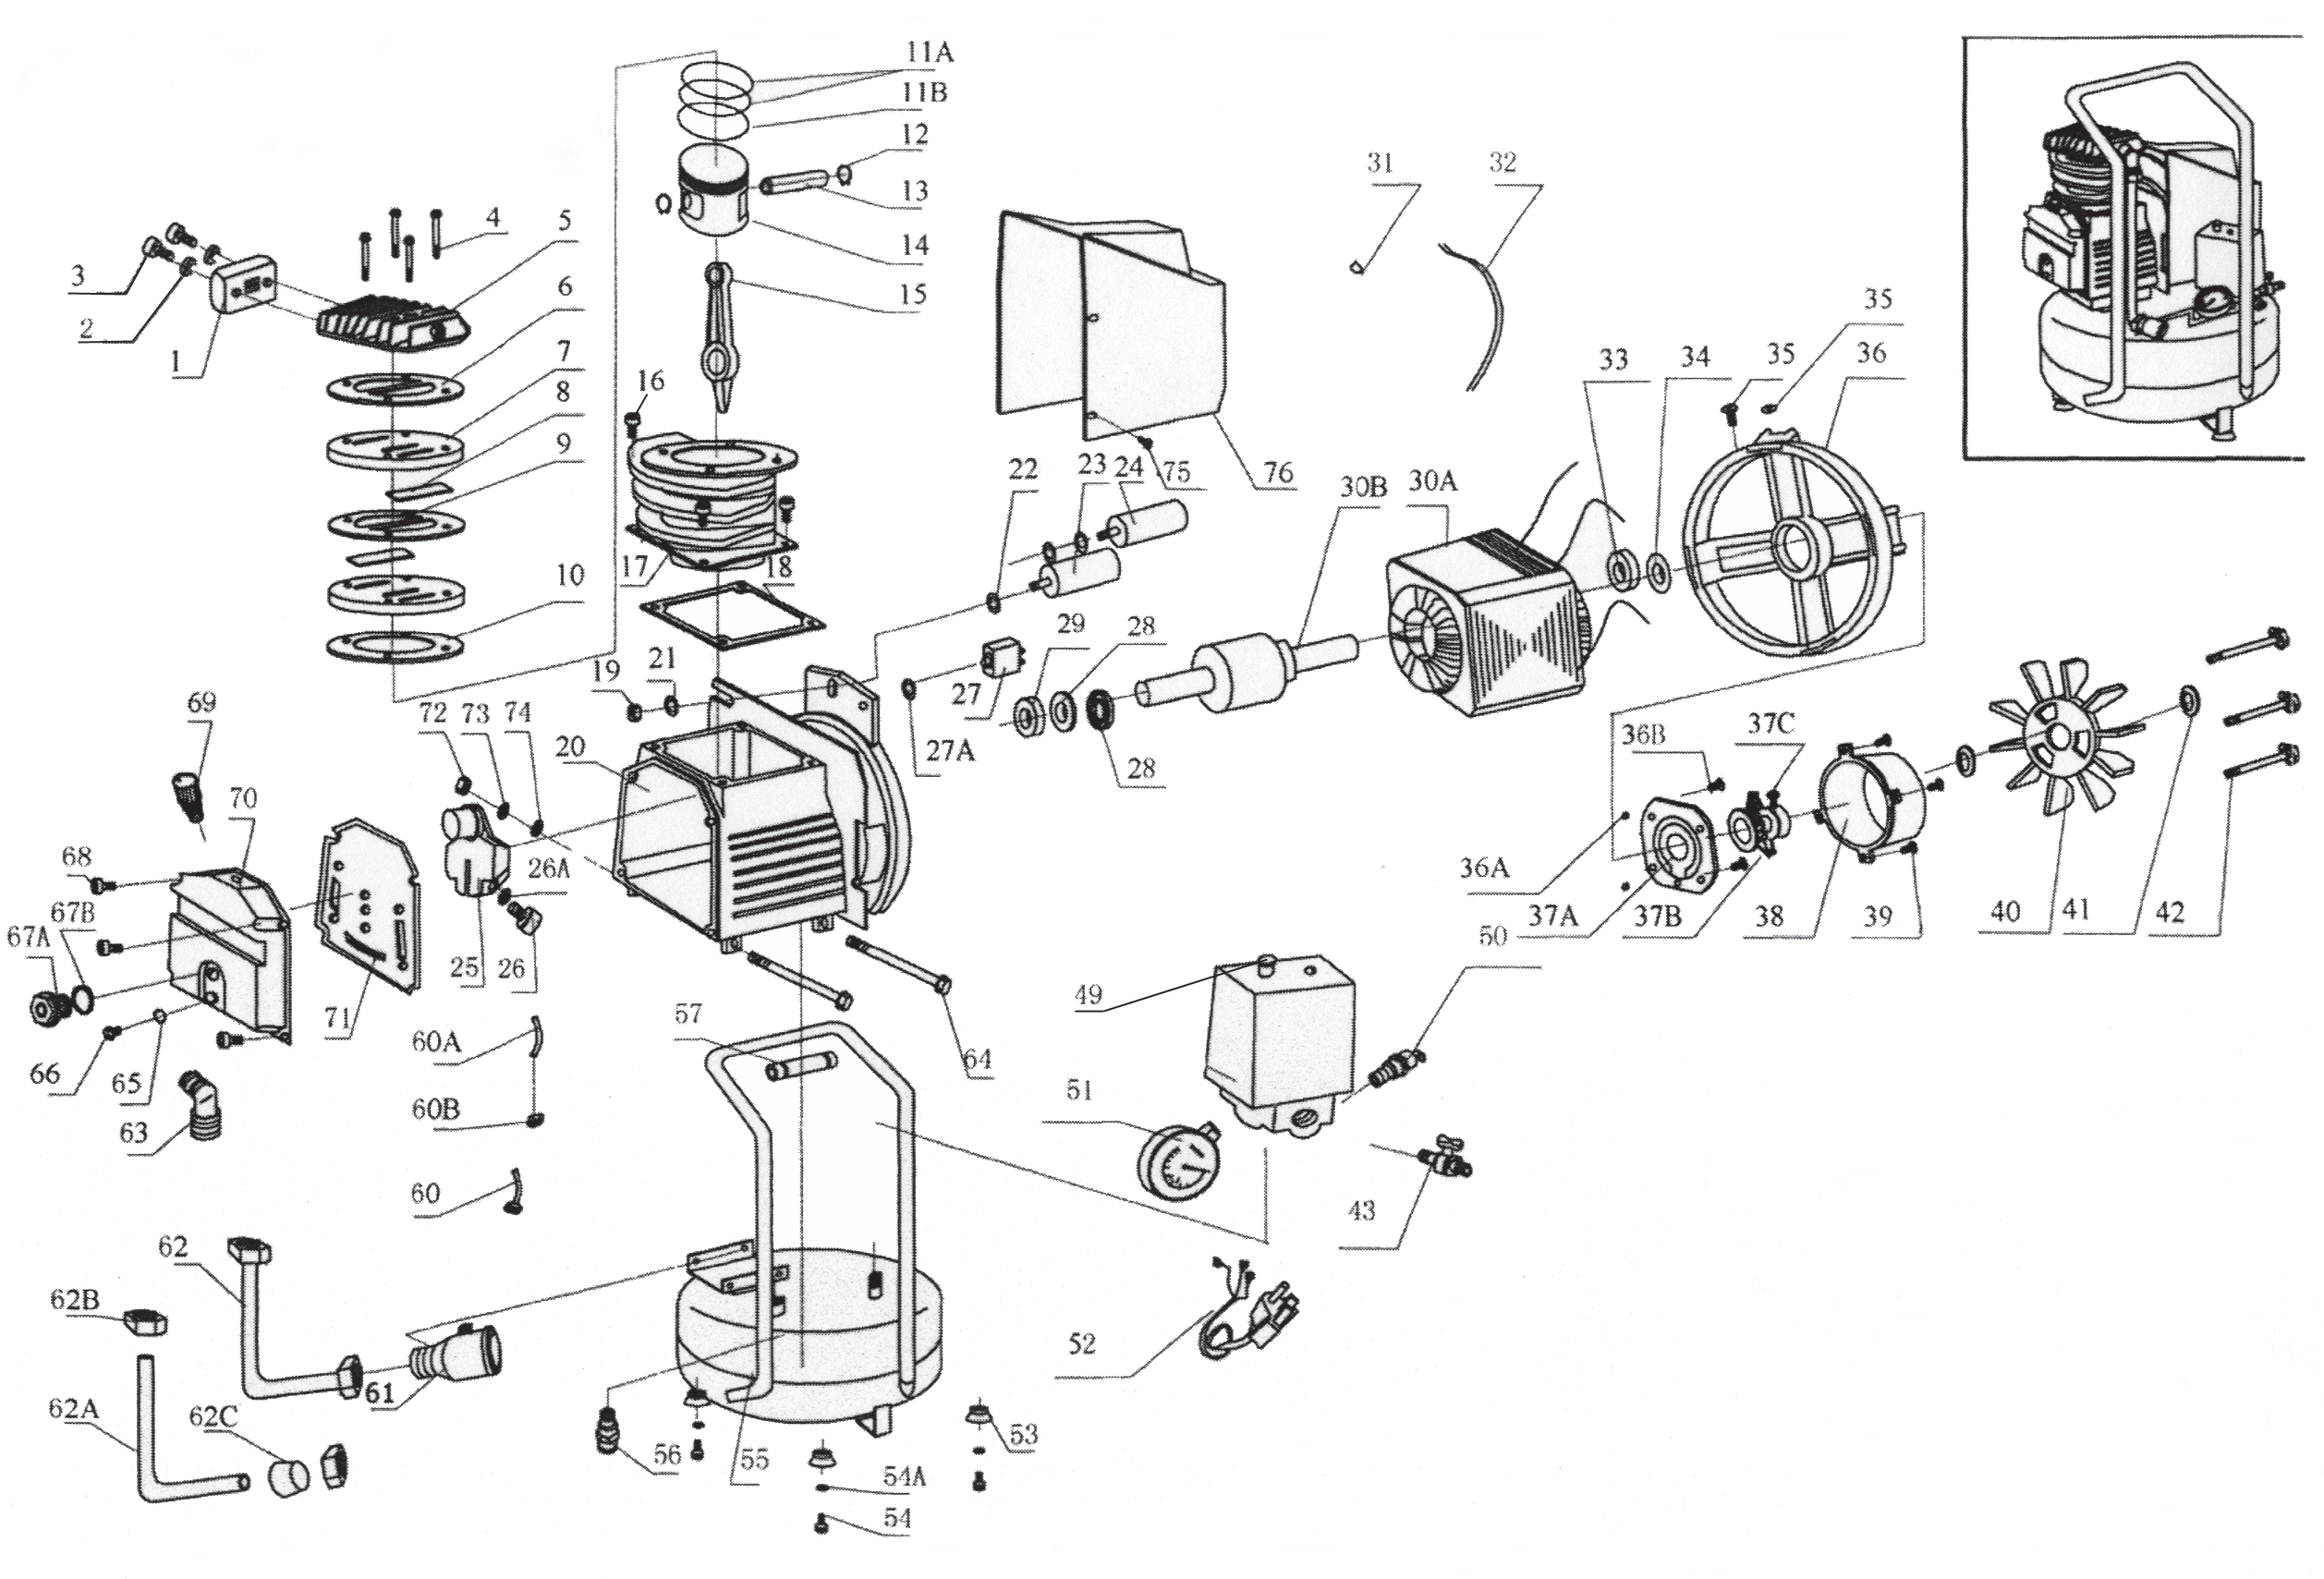 7623 truck wont run with Wiring Diagram Of A Tube Light on Mini Security Cam Wiring Diagram in addition 6 Way Trailer Connector Wiring Diagram Pdf further For John Deere Onan Engine Wiring Diagram Pdf moreover Wiring Diagram Of A Tube Light likewise Suzuki Dr 250 Wiring Diagram.